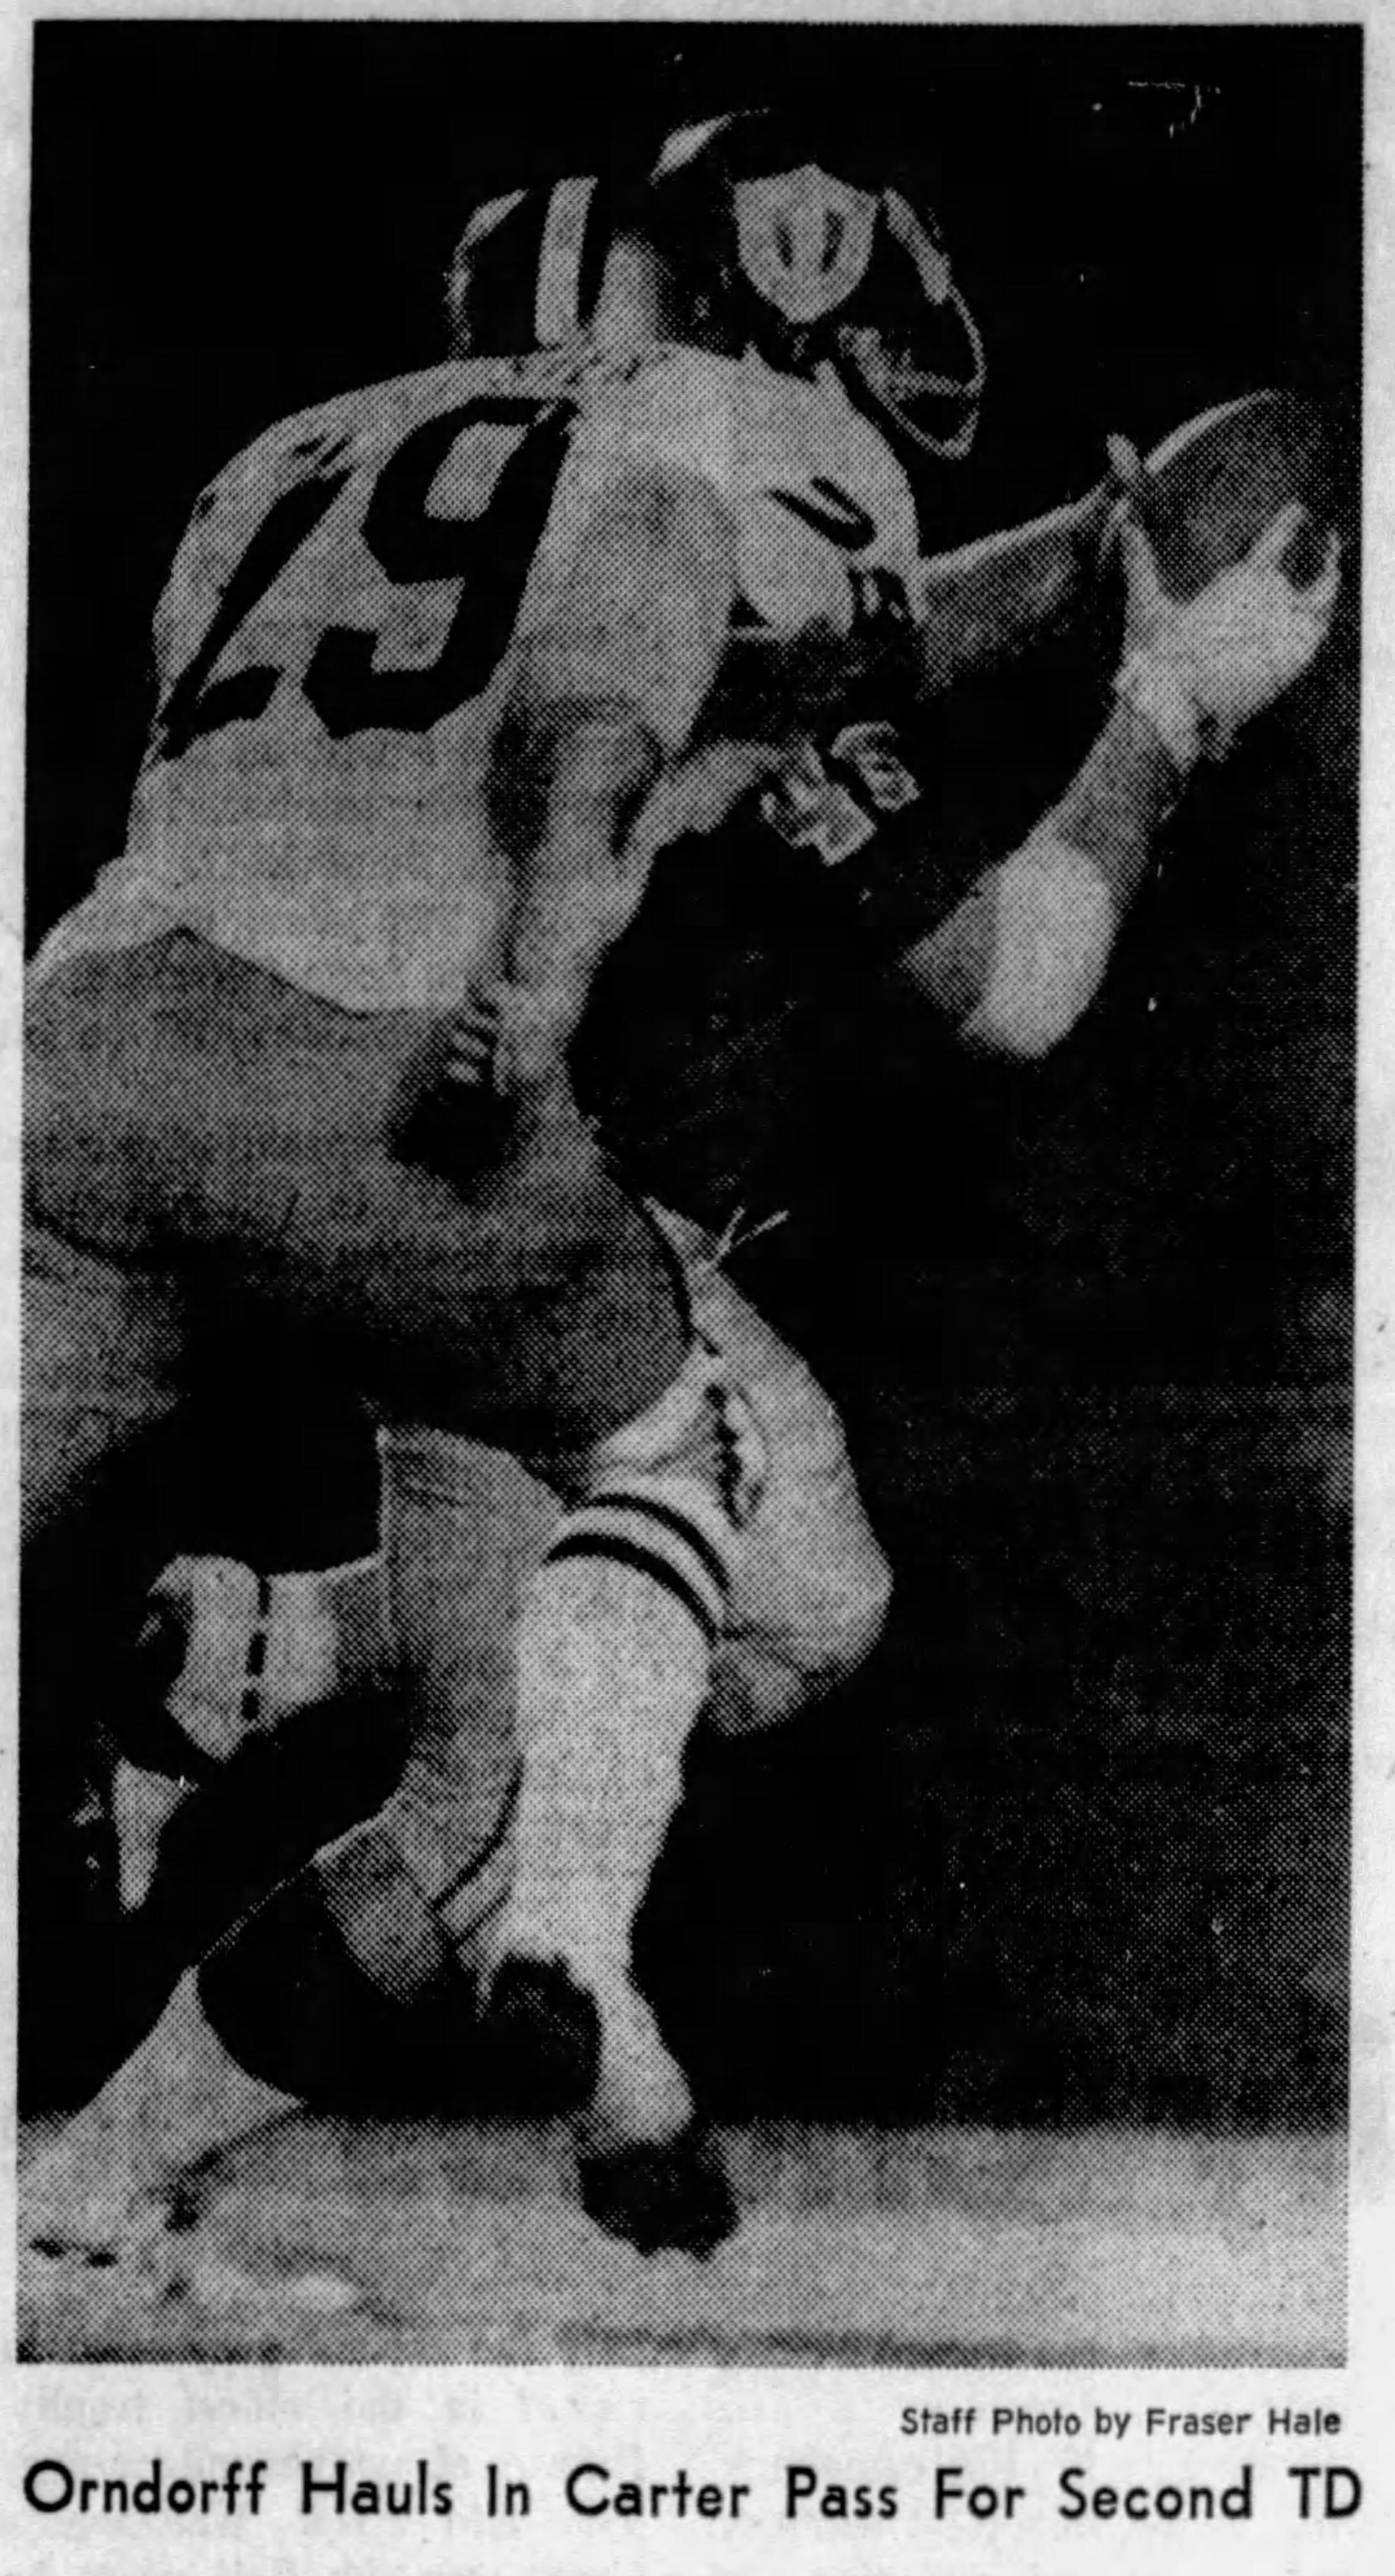 Orndorff scored twice in the University of Tampa's Tangerine Bowl appearance against Kent State in 1972